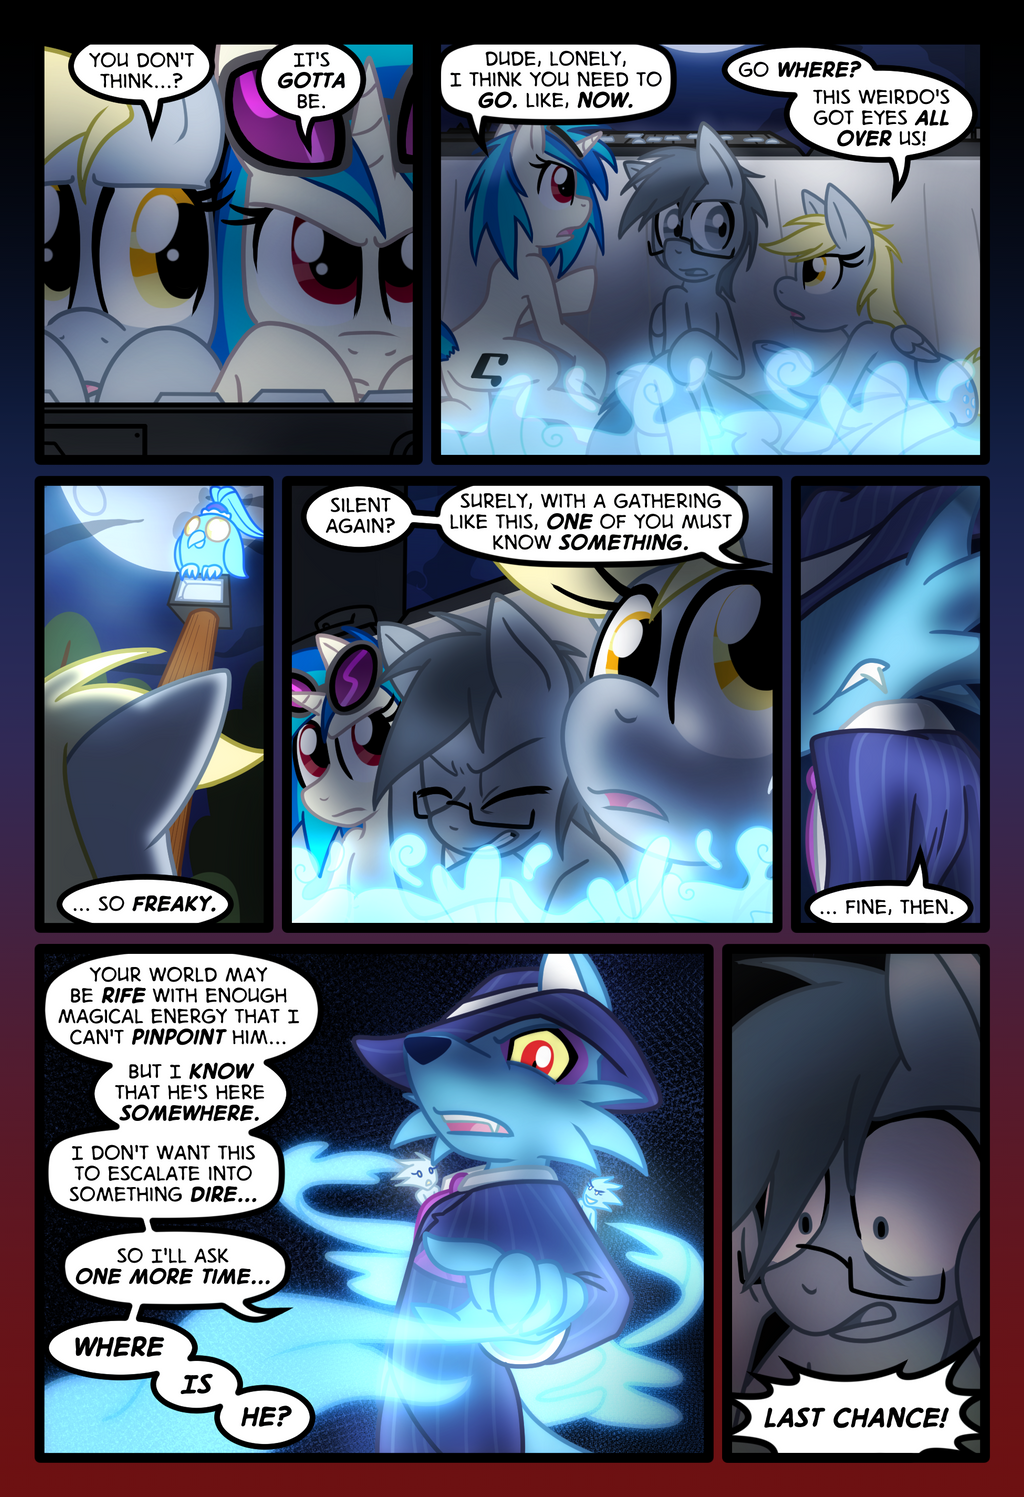 Lonely Hooves 2-51 by Zaron